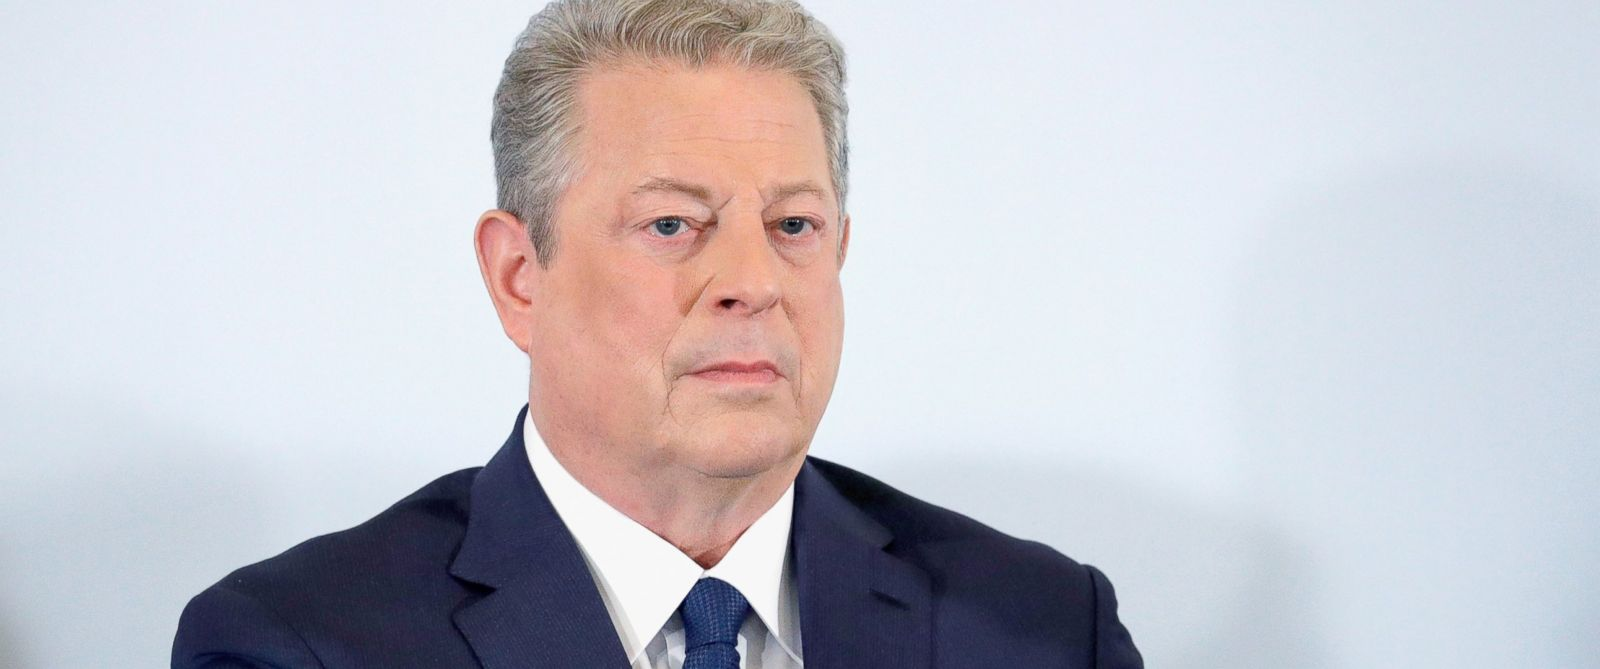 the administration of al gore Anytime someone online writes about internet history, the comments inevitably fill up with jokes about al gore there's a popular myth that gore once claimed to have invented the internet, which means many people think that al gore works as both a set-up and a punchline what these jokesters might be surprised to learn is that gore actually.